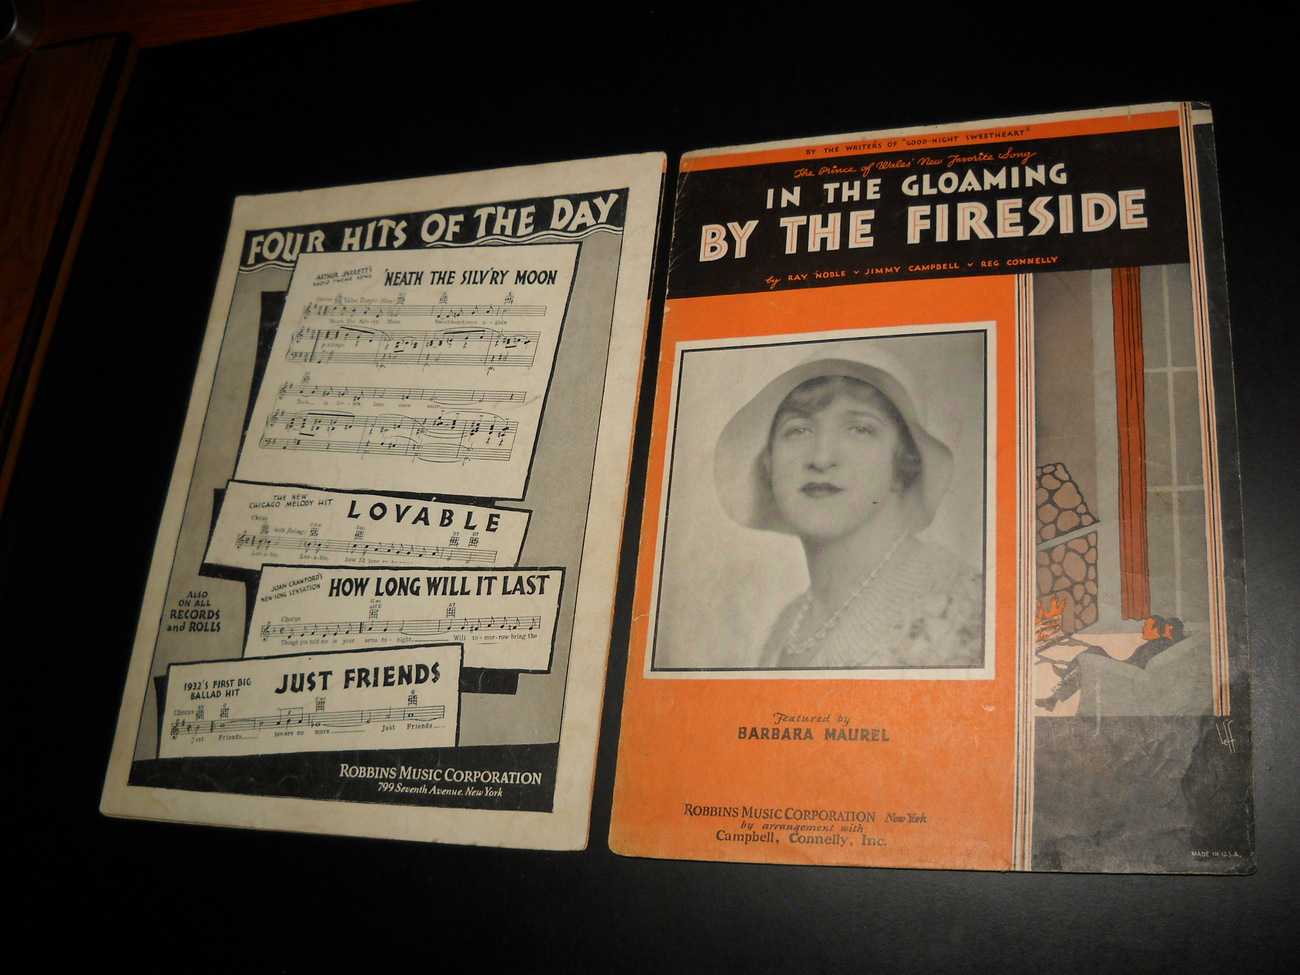 Sheet_music_in_the_gloaming_by_the_firelight_barbara_muriel_1931_campbell_connelly_04